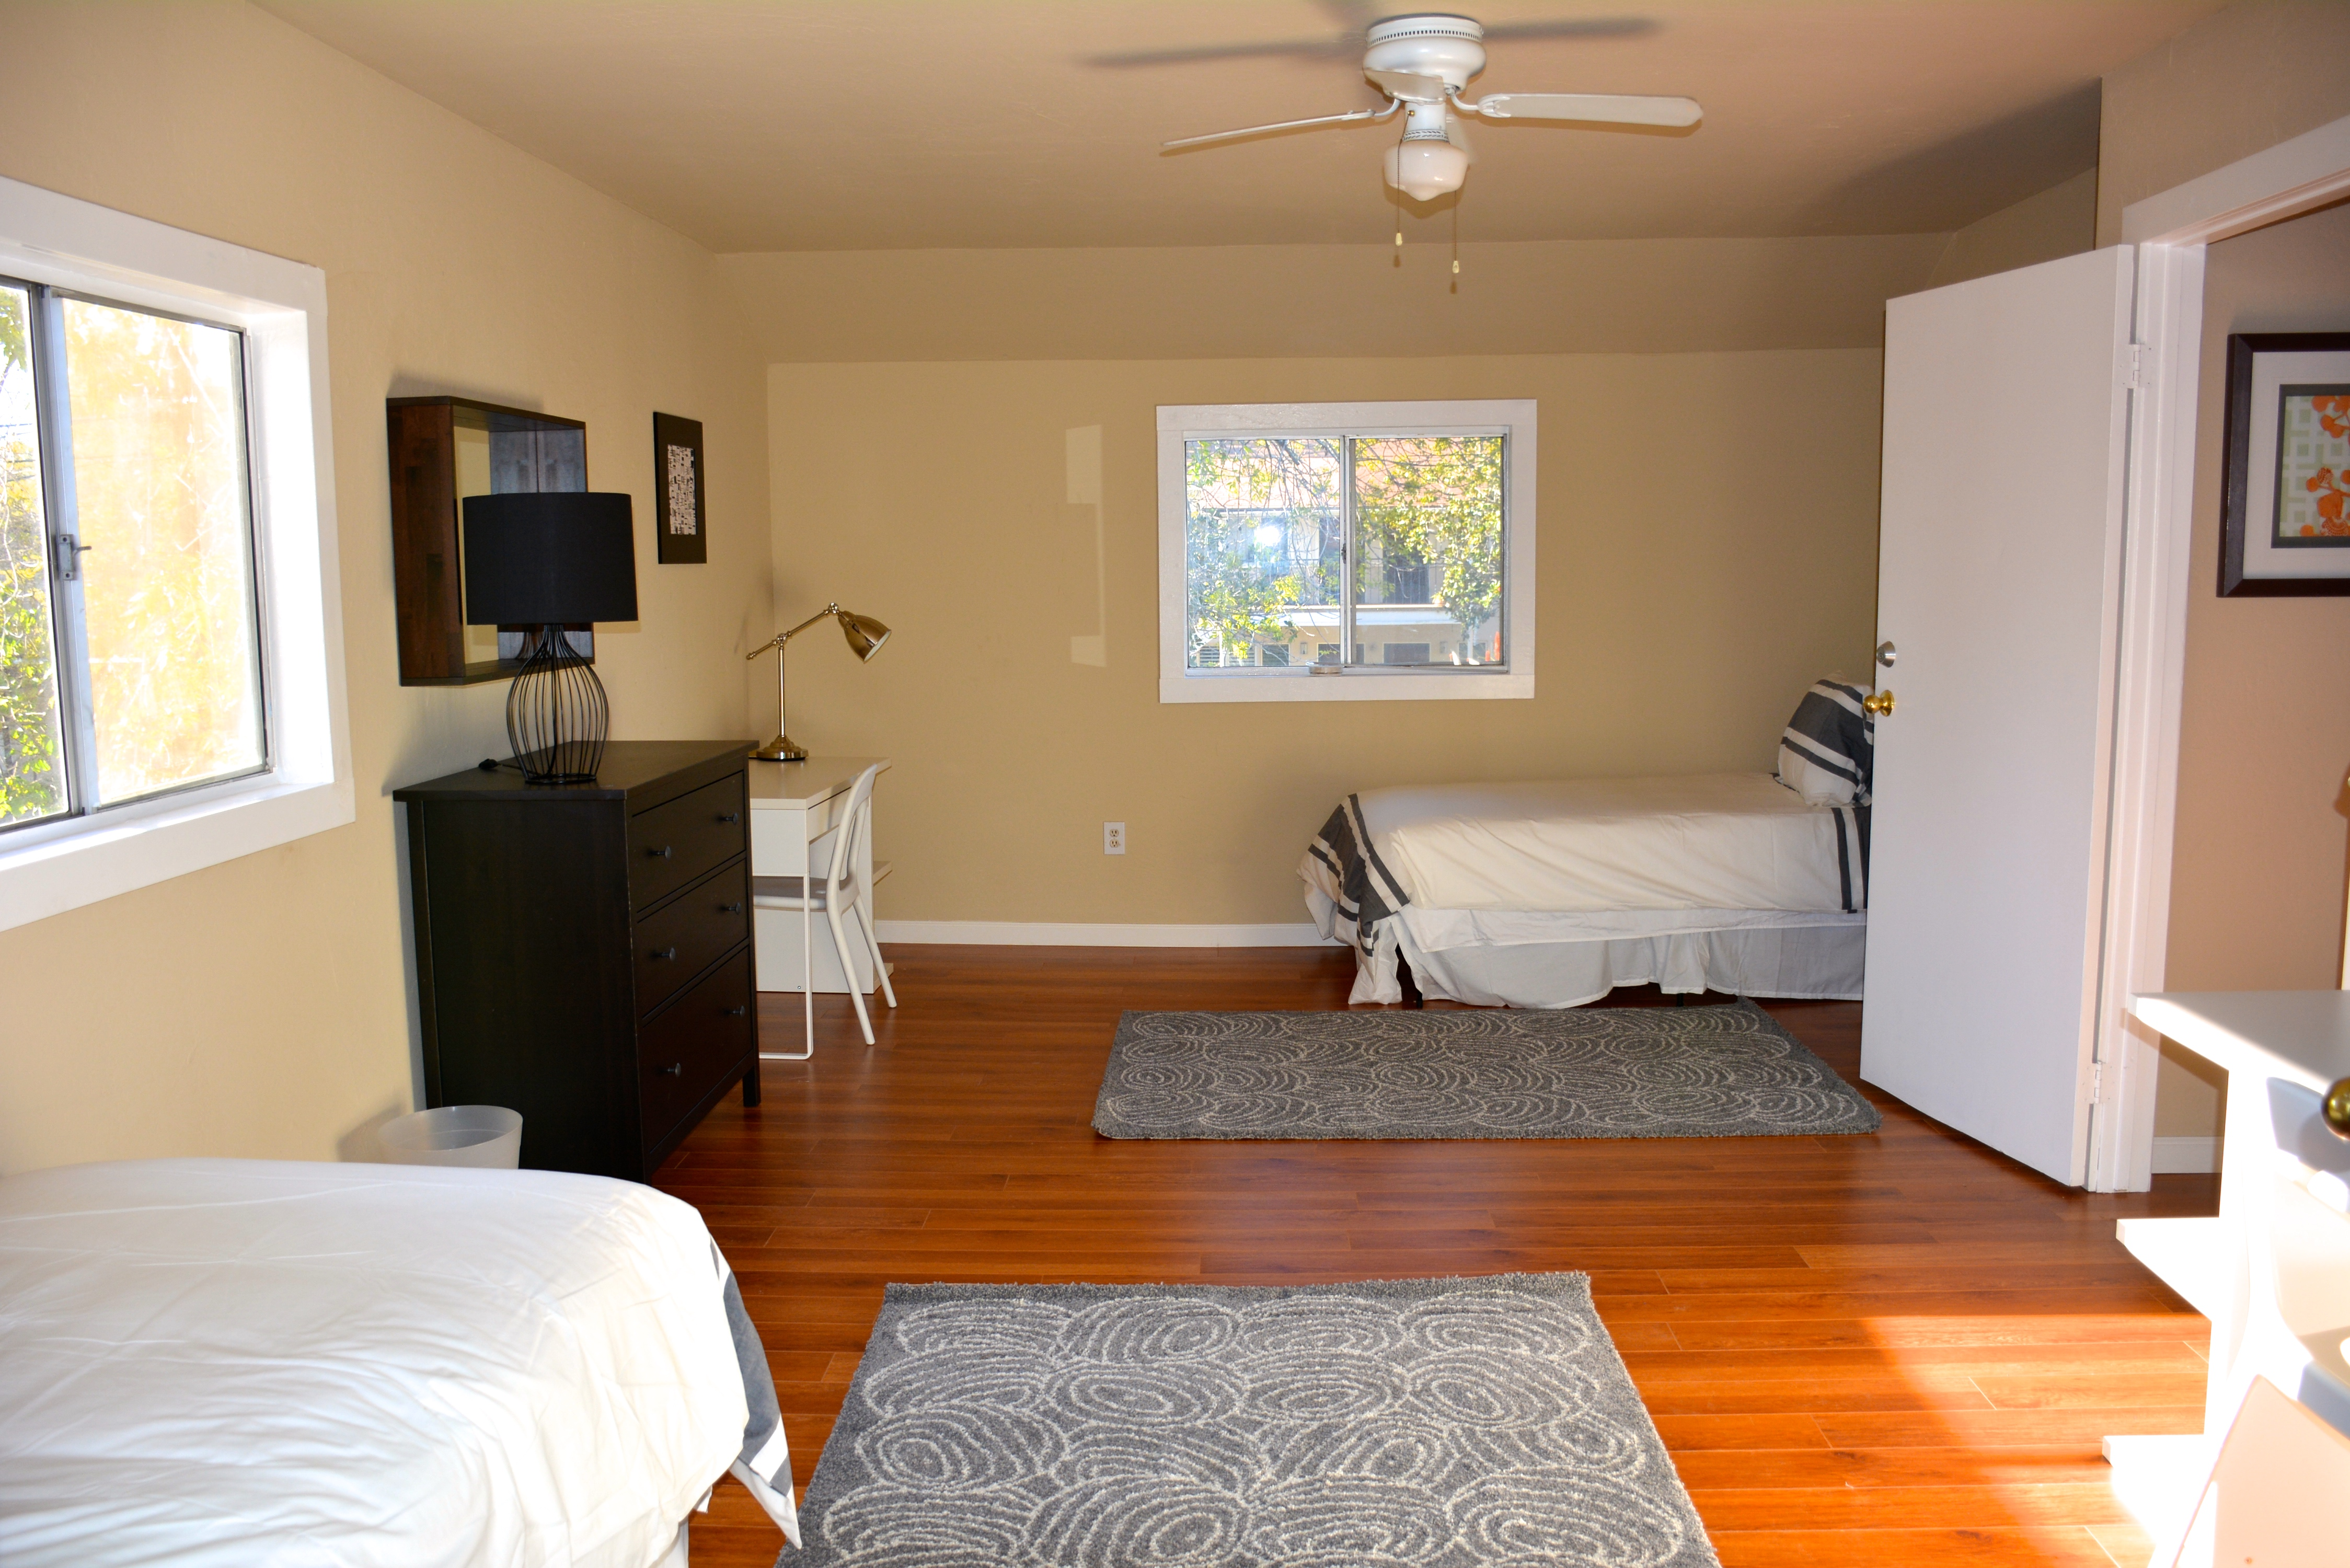 Downtown House B shared room